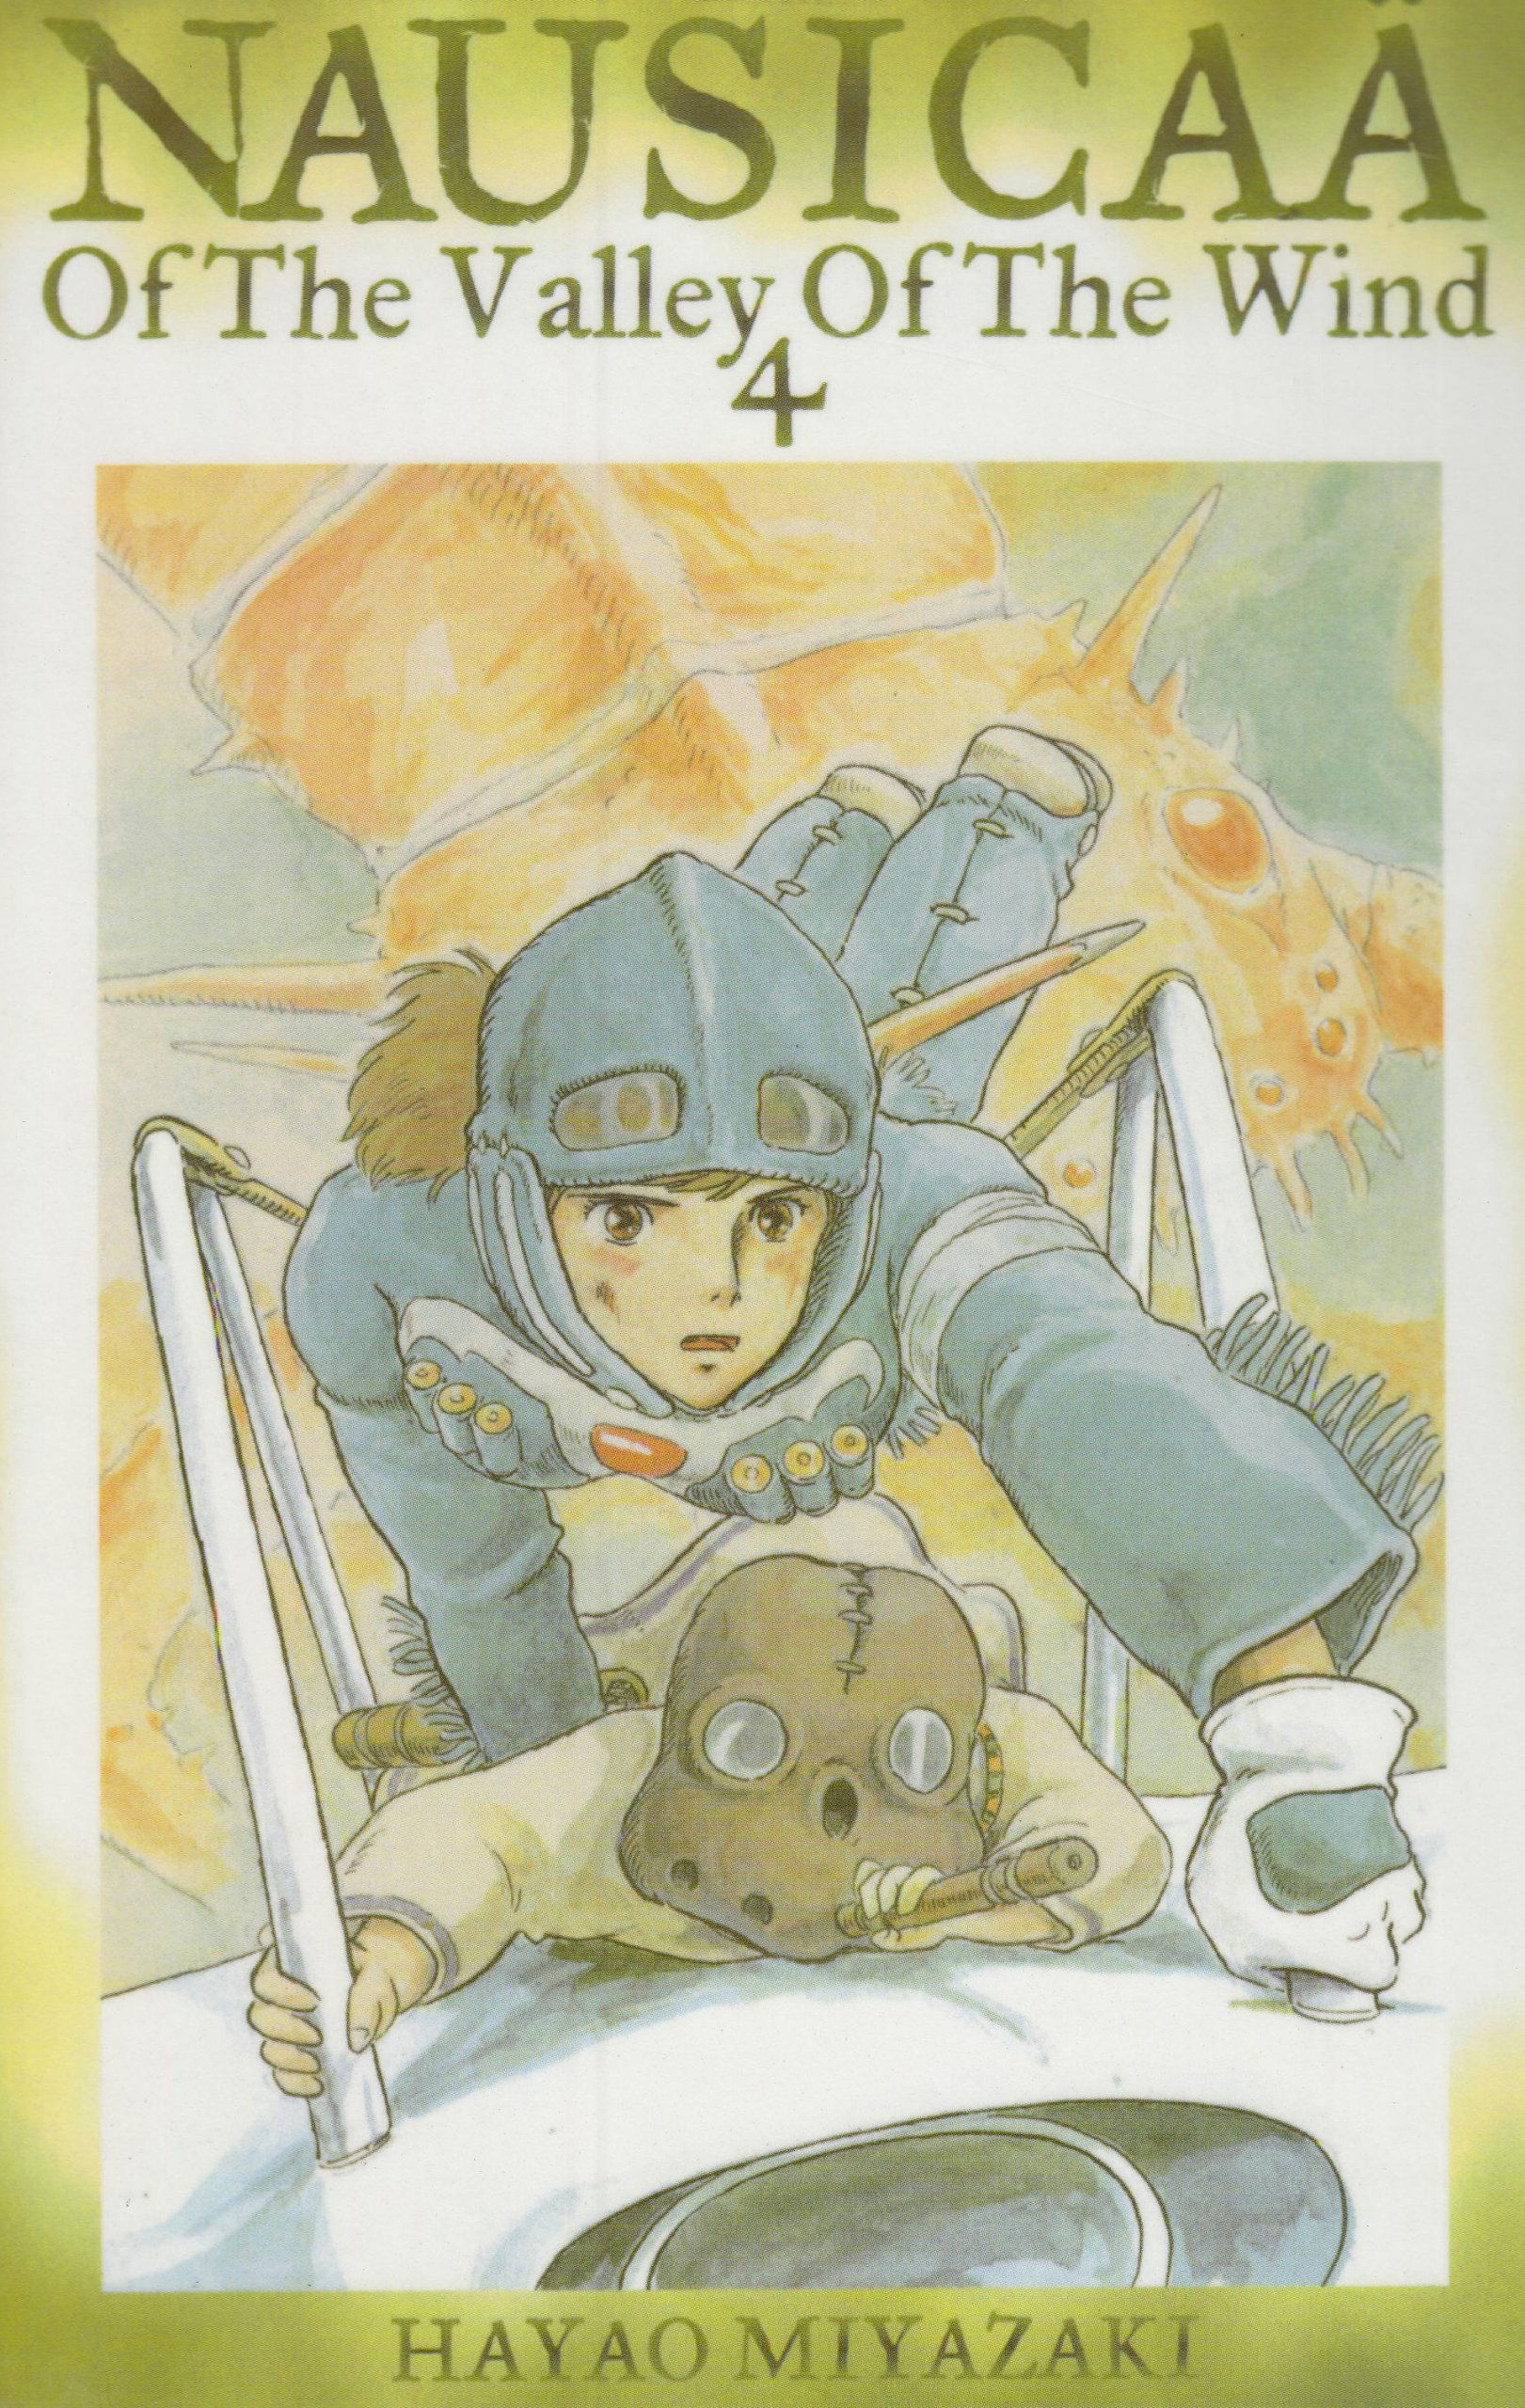 Nausicaa Of The Valley Of The Wind Map.Nausicaa Of The Valley Of The Wind Amazon Co Uk Hayao Miyazaki